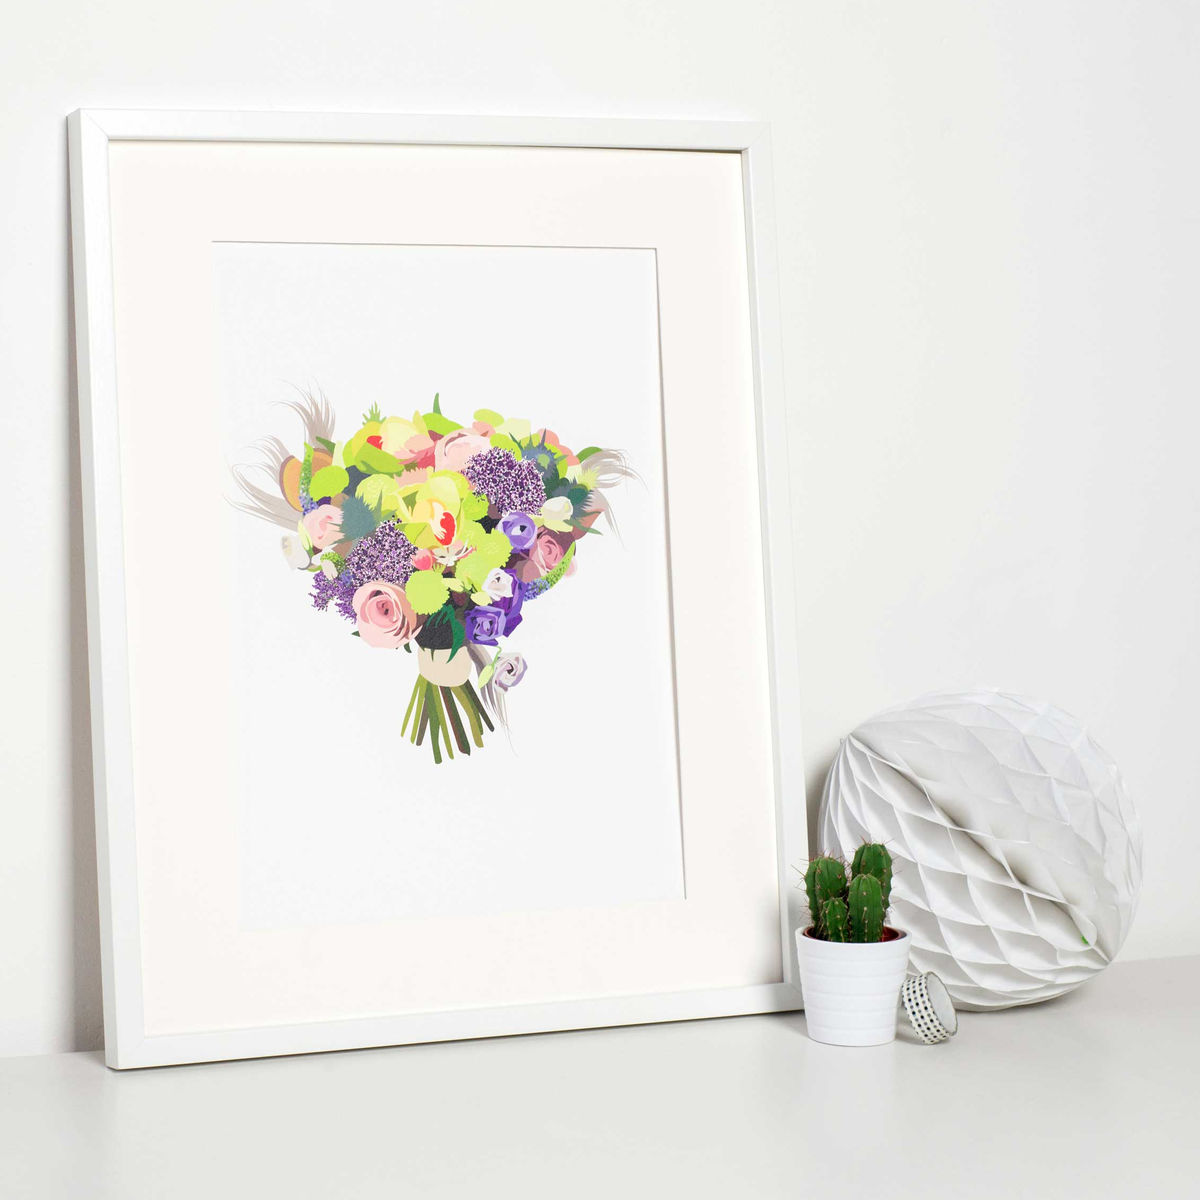 Custom Wedding Bouquet Illustration - product image